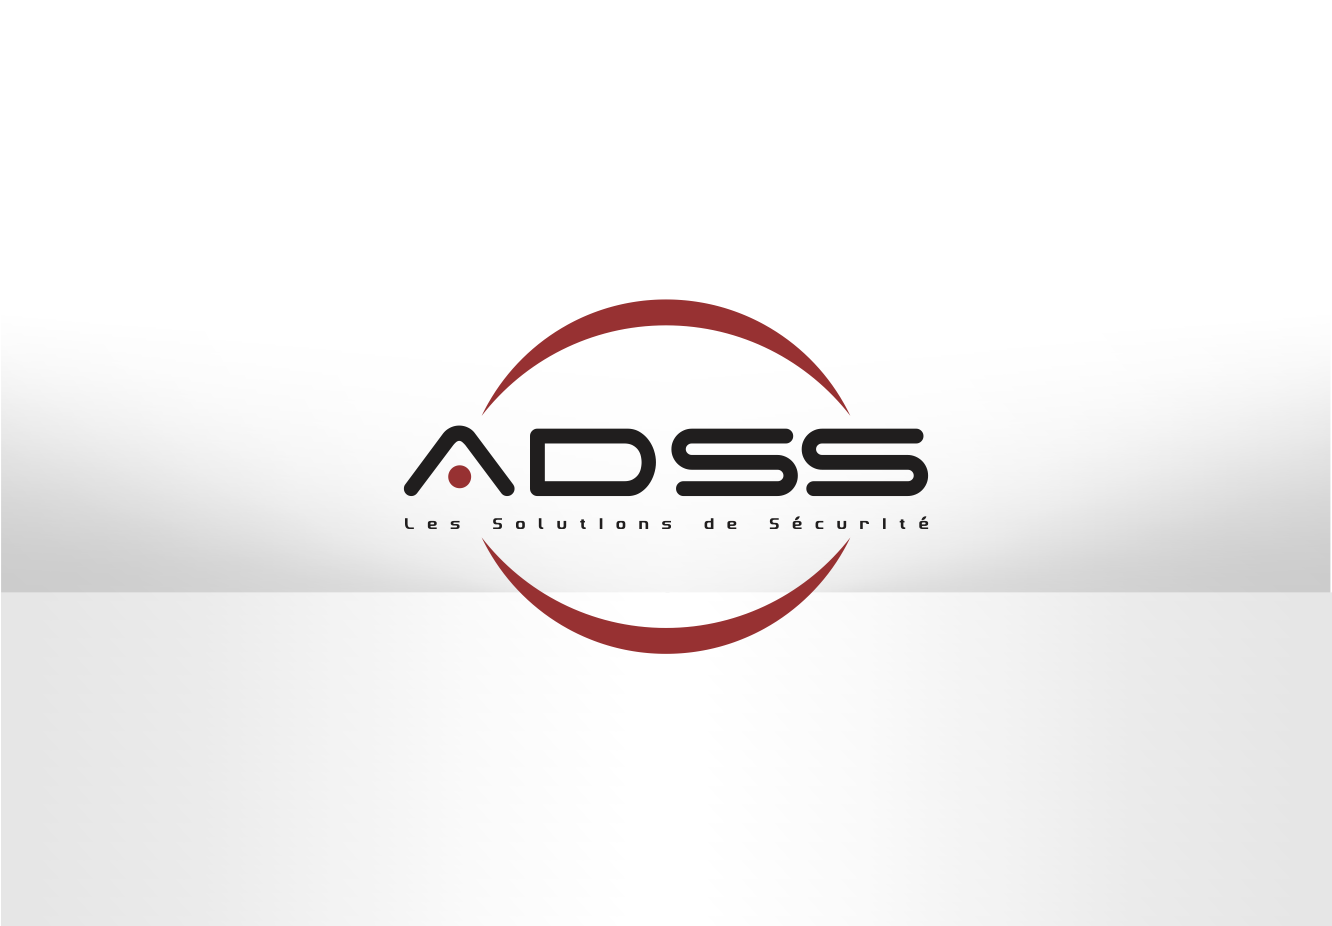 Create the next logo for ADSS